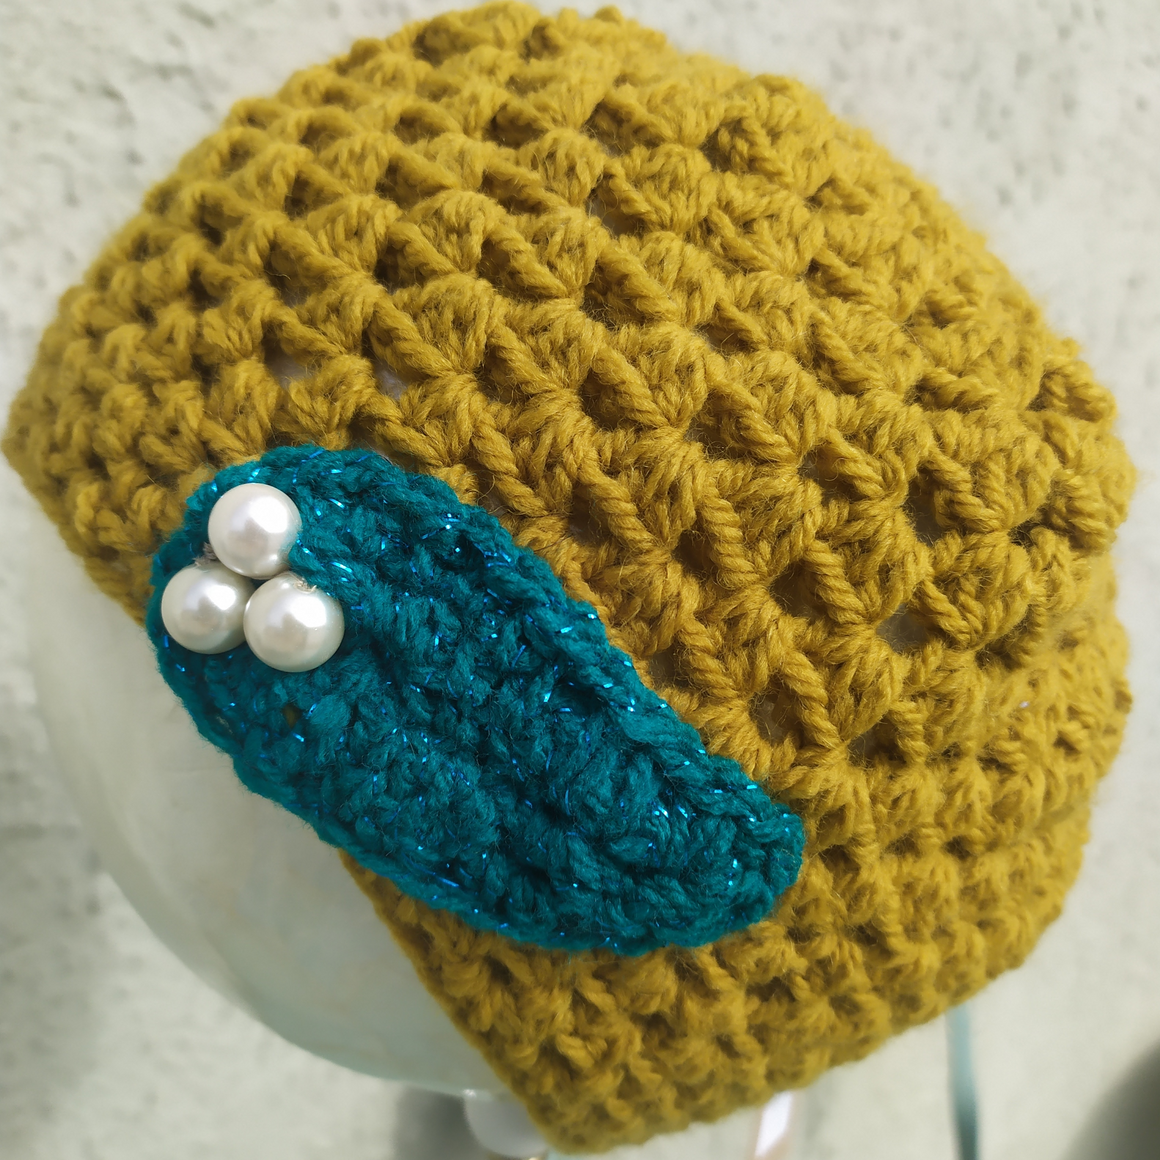 Moss Green hat with leaf & Pearls - Medium